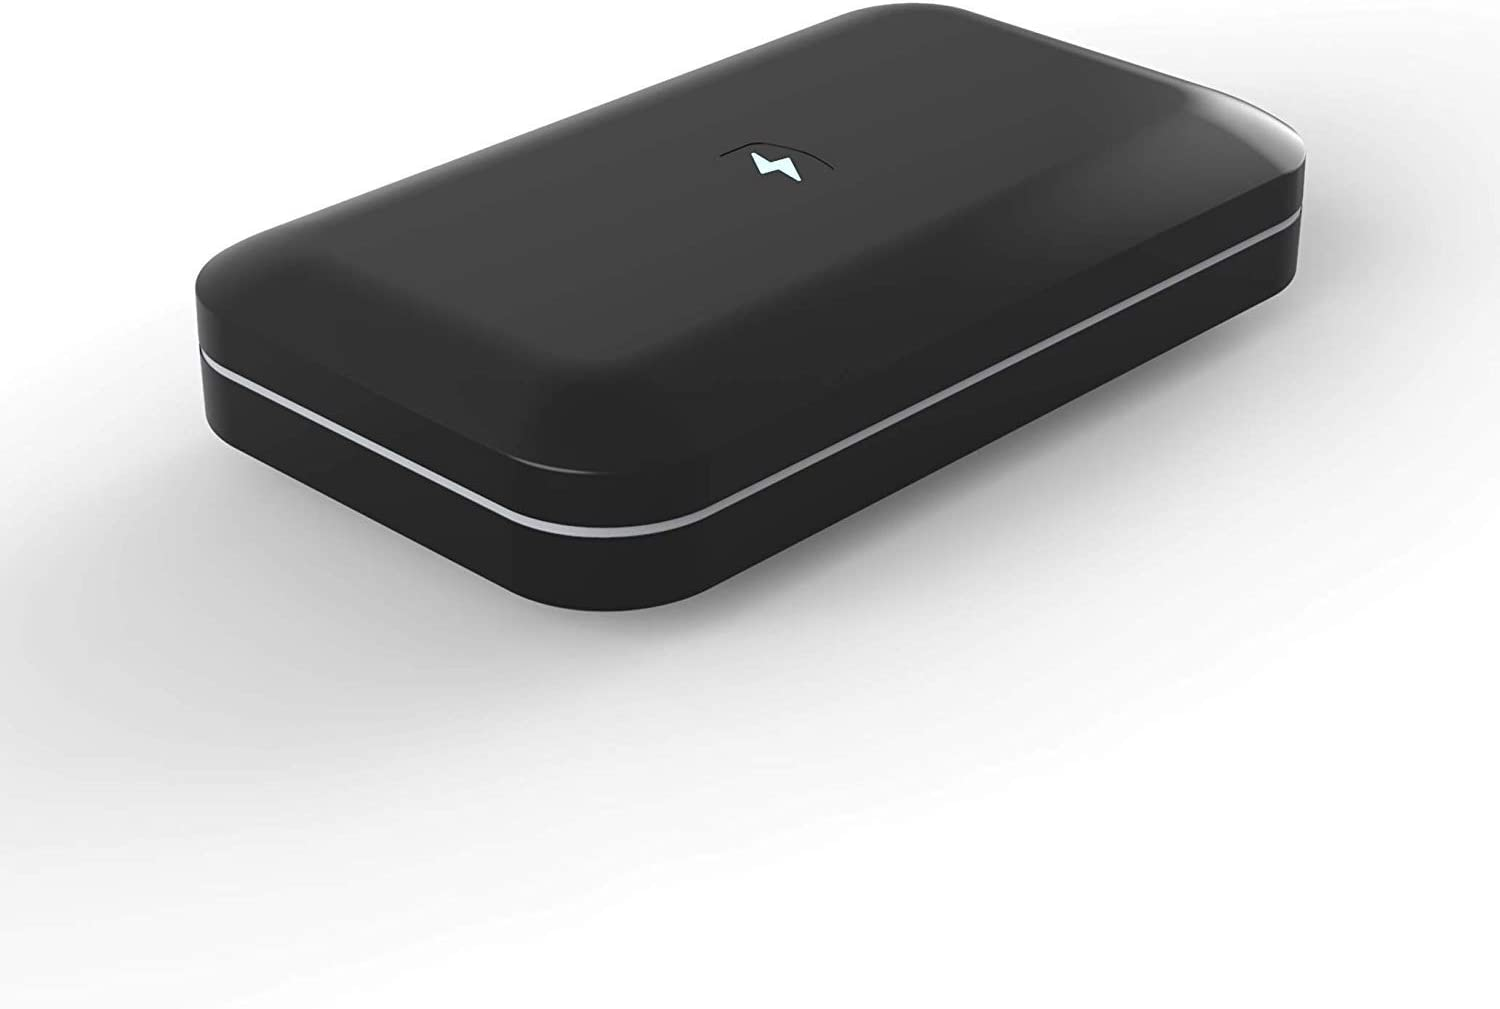 Black PhoneSoap 3.0 UV Sanitizer and Universal Phone Charger 3 Pack